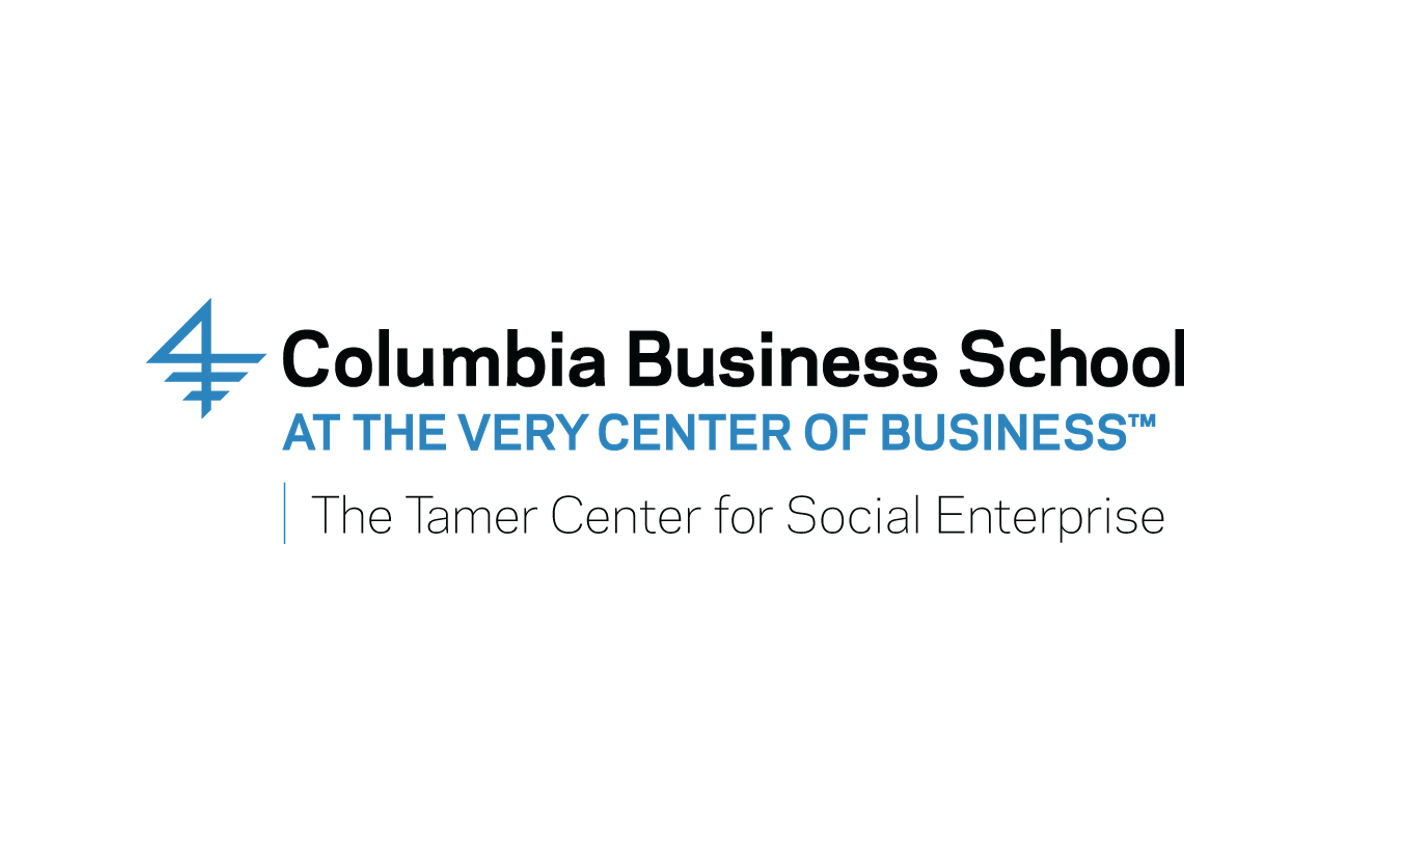 Trek Medics Wins Columbia Business School's Tamer Fund for